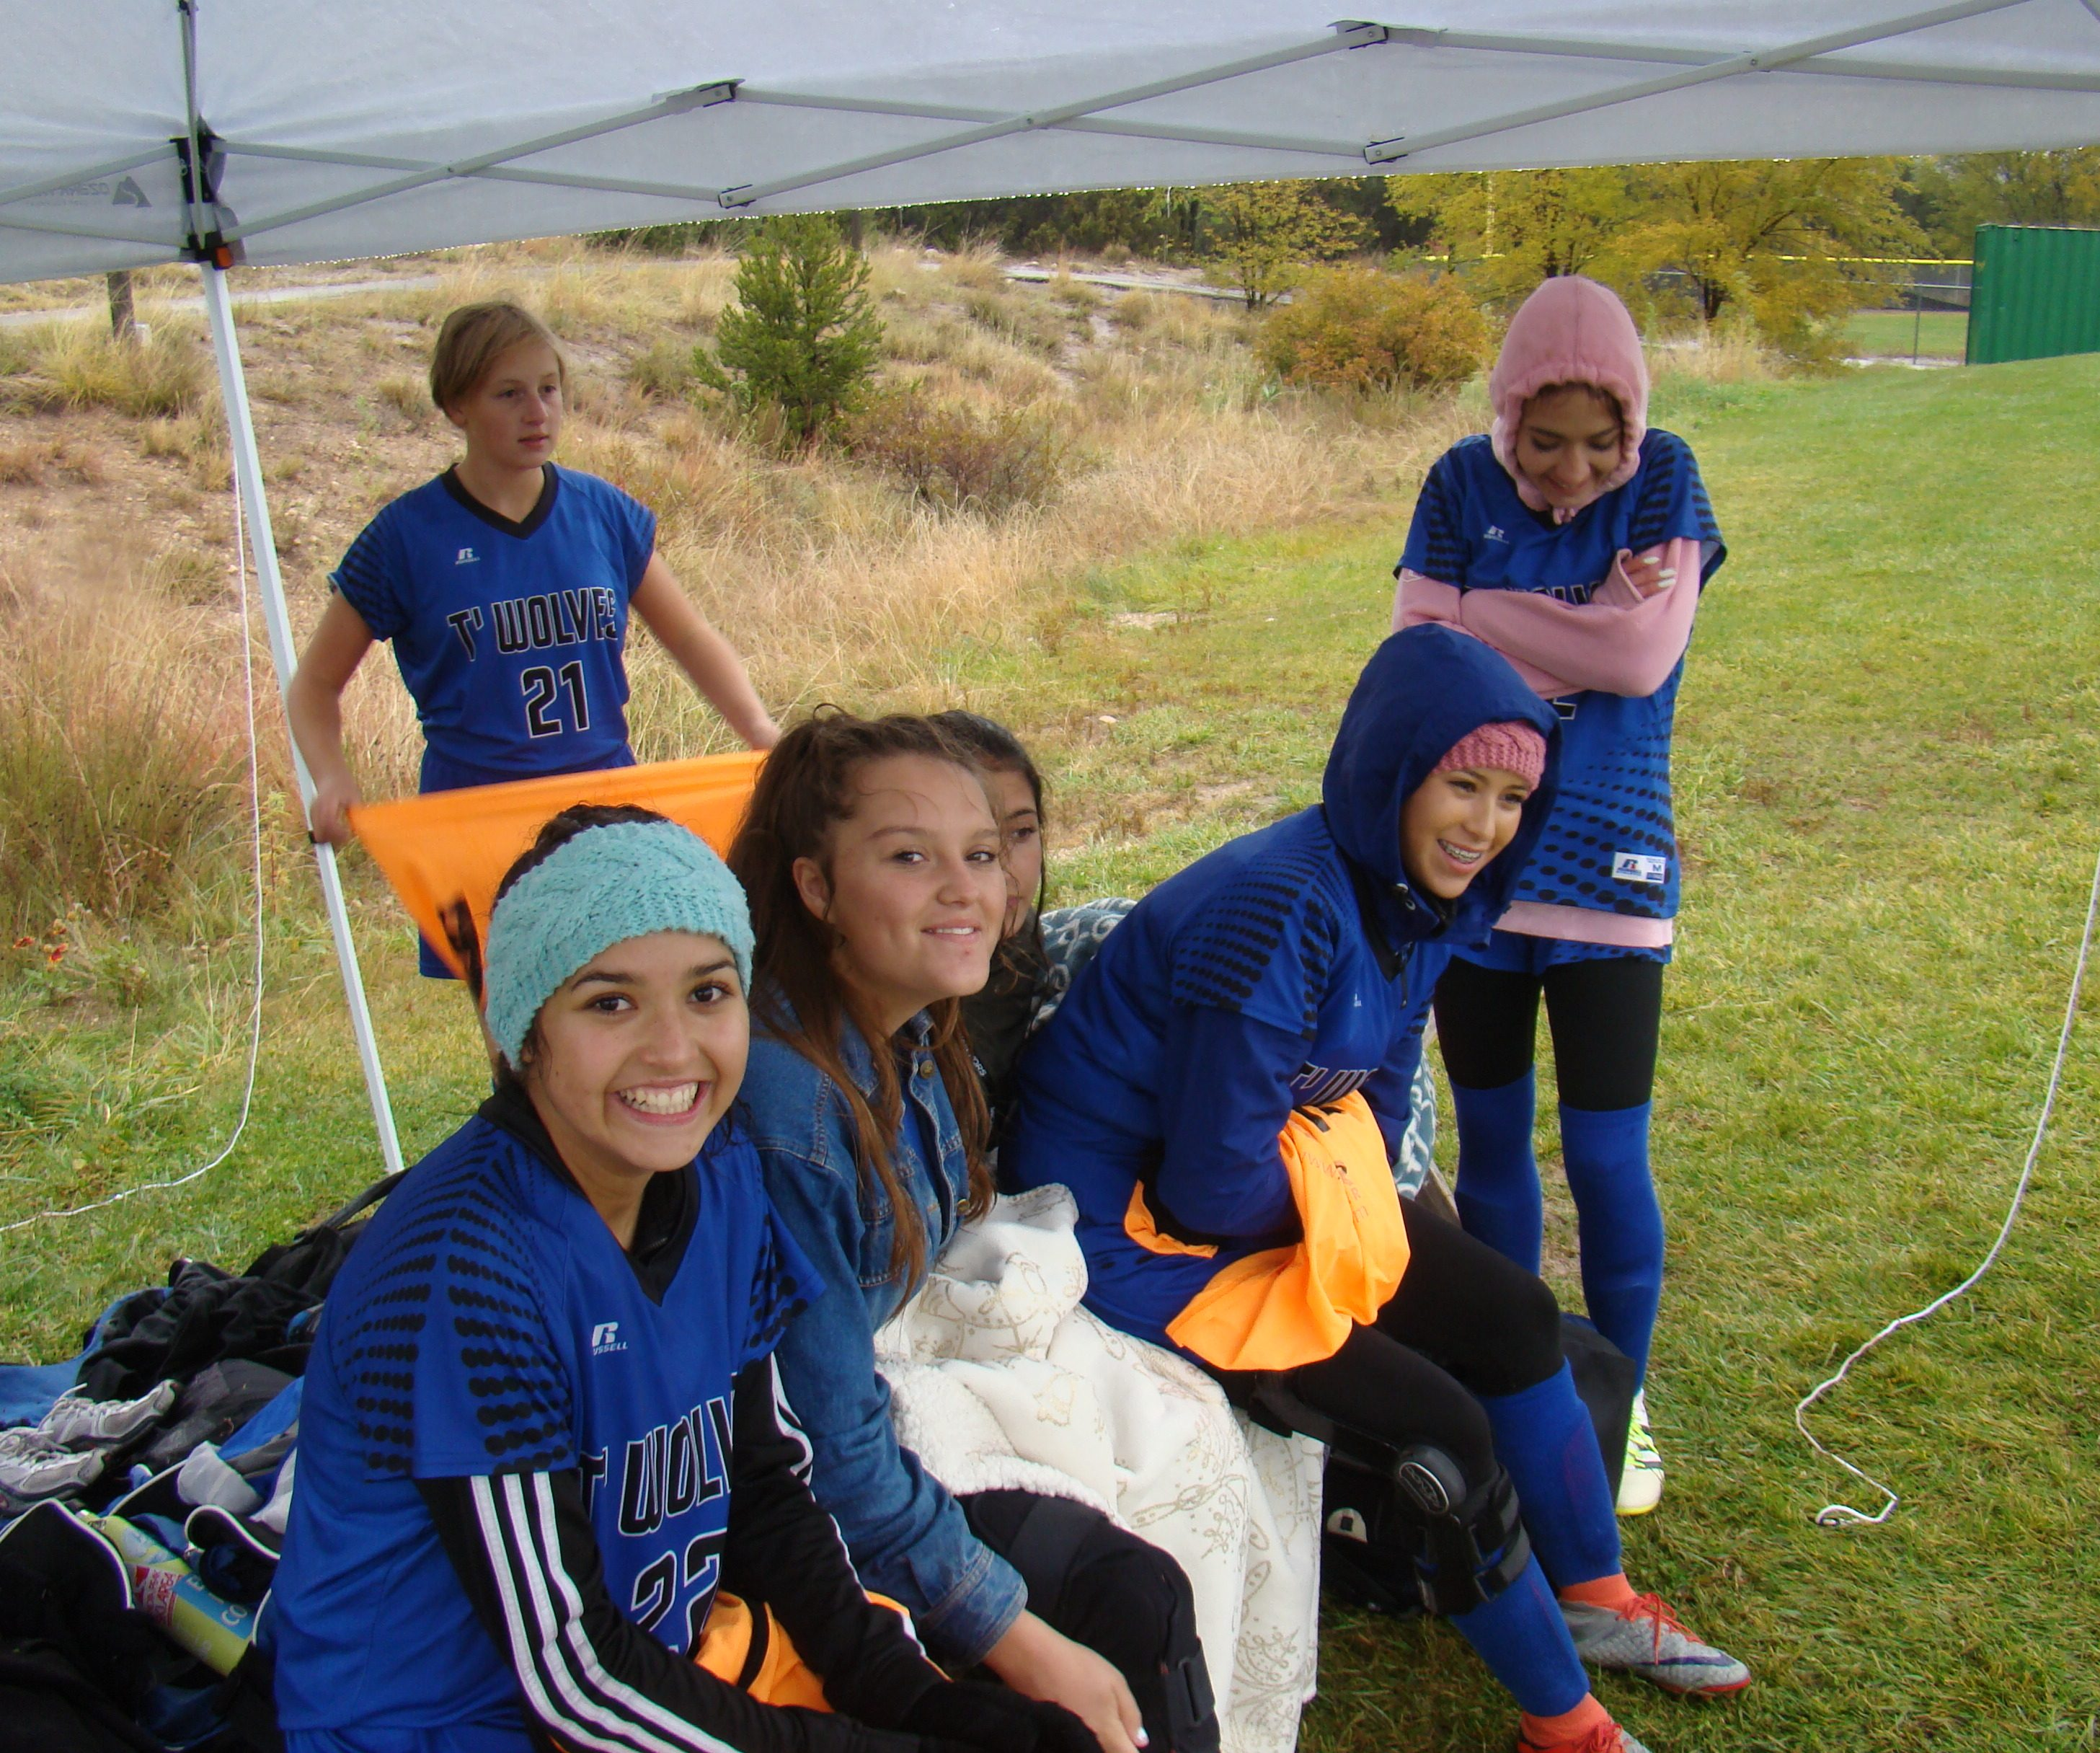 East Mountain girls soccer squad's 'spirits up' after rainy victory over ATC